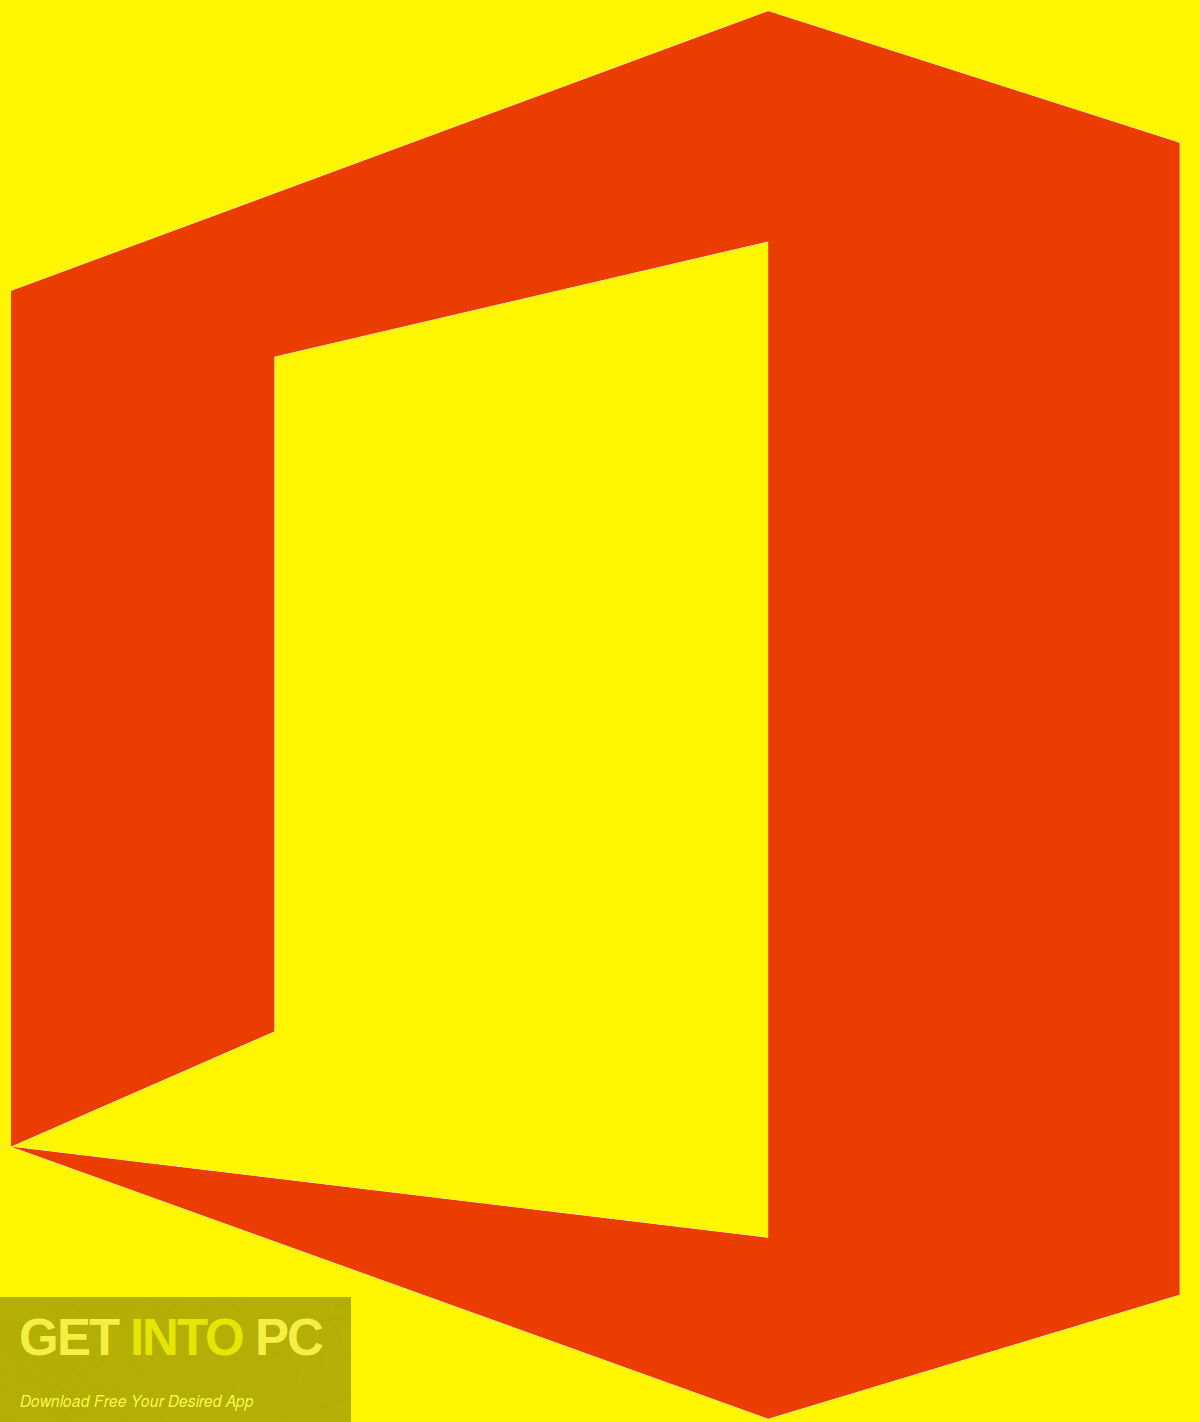 Office 2019 Professional Plus Updated Aug 2019 Free Download-GetintoPC.com